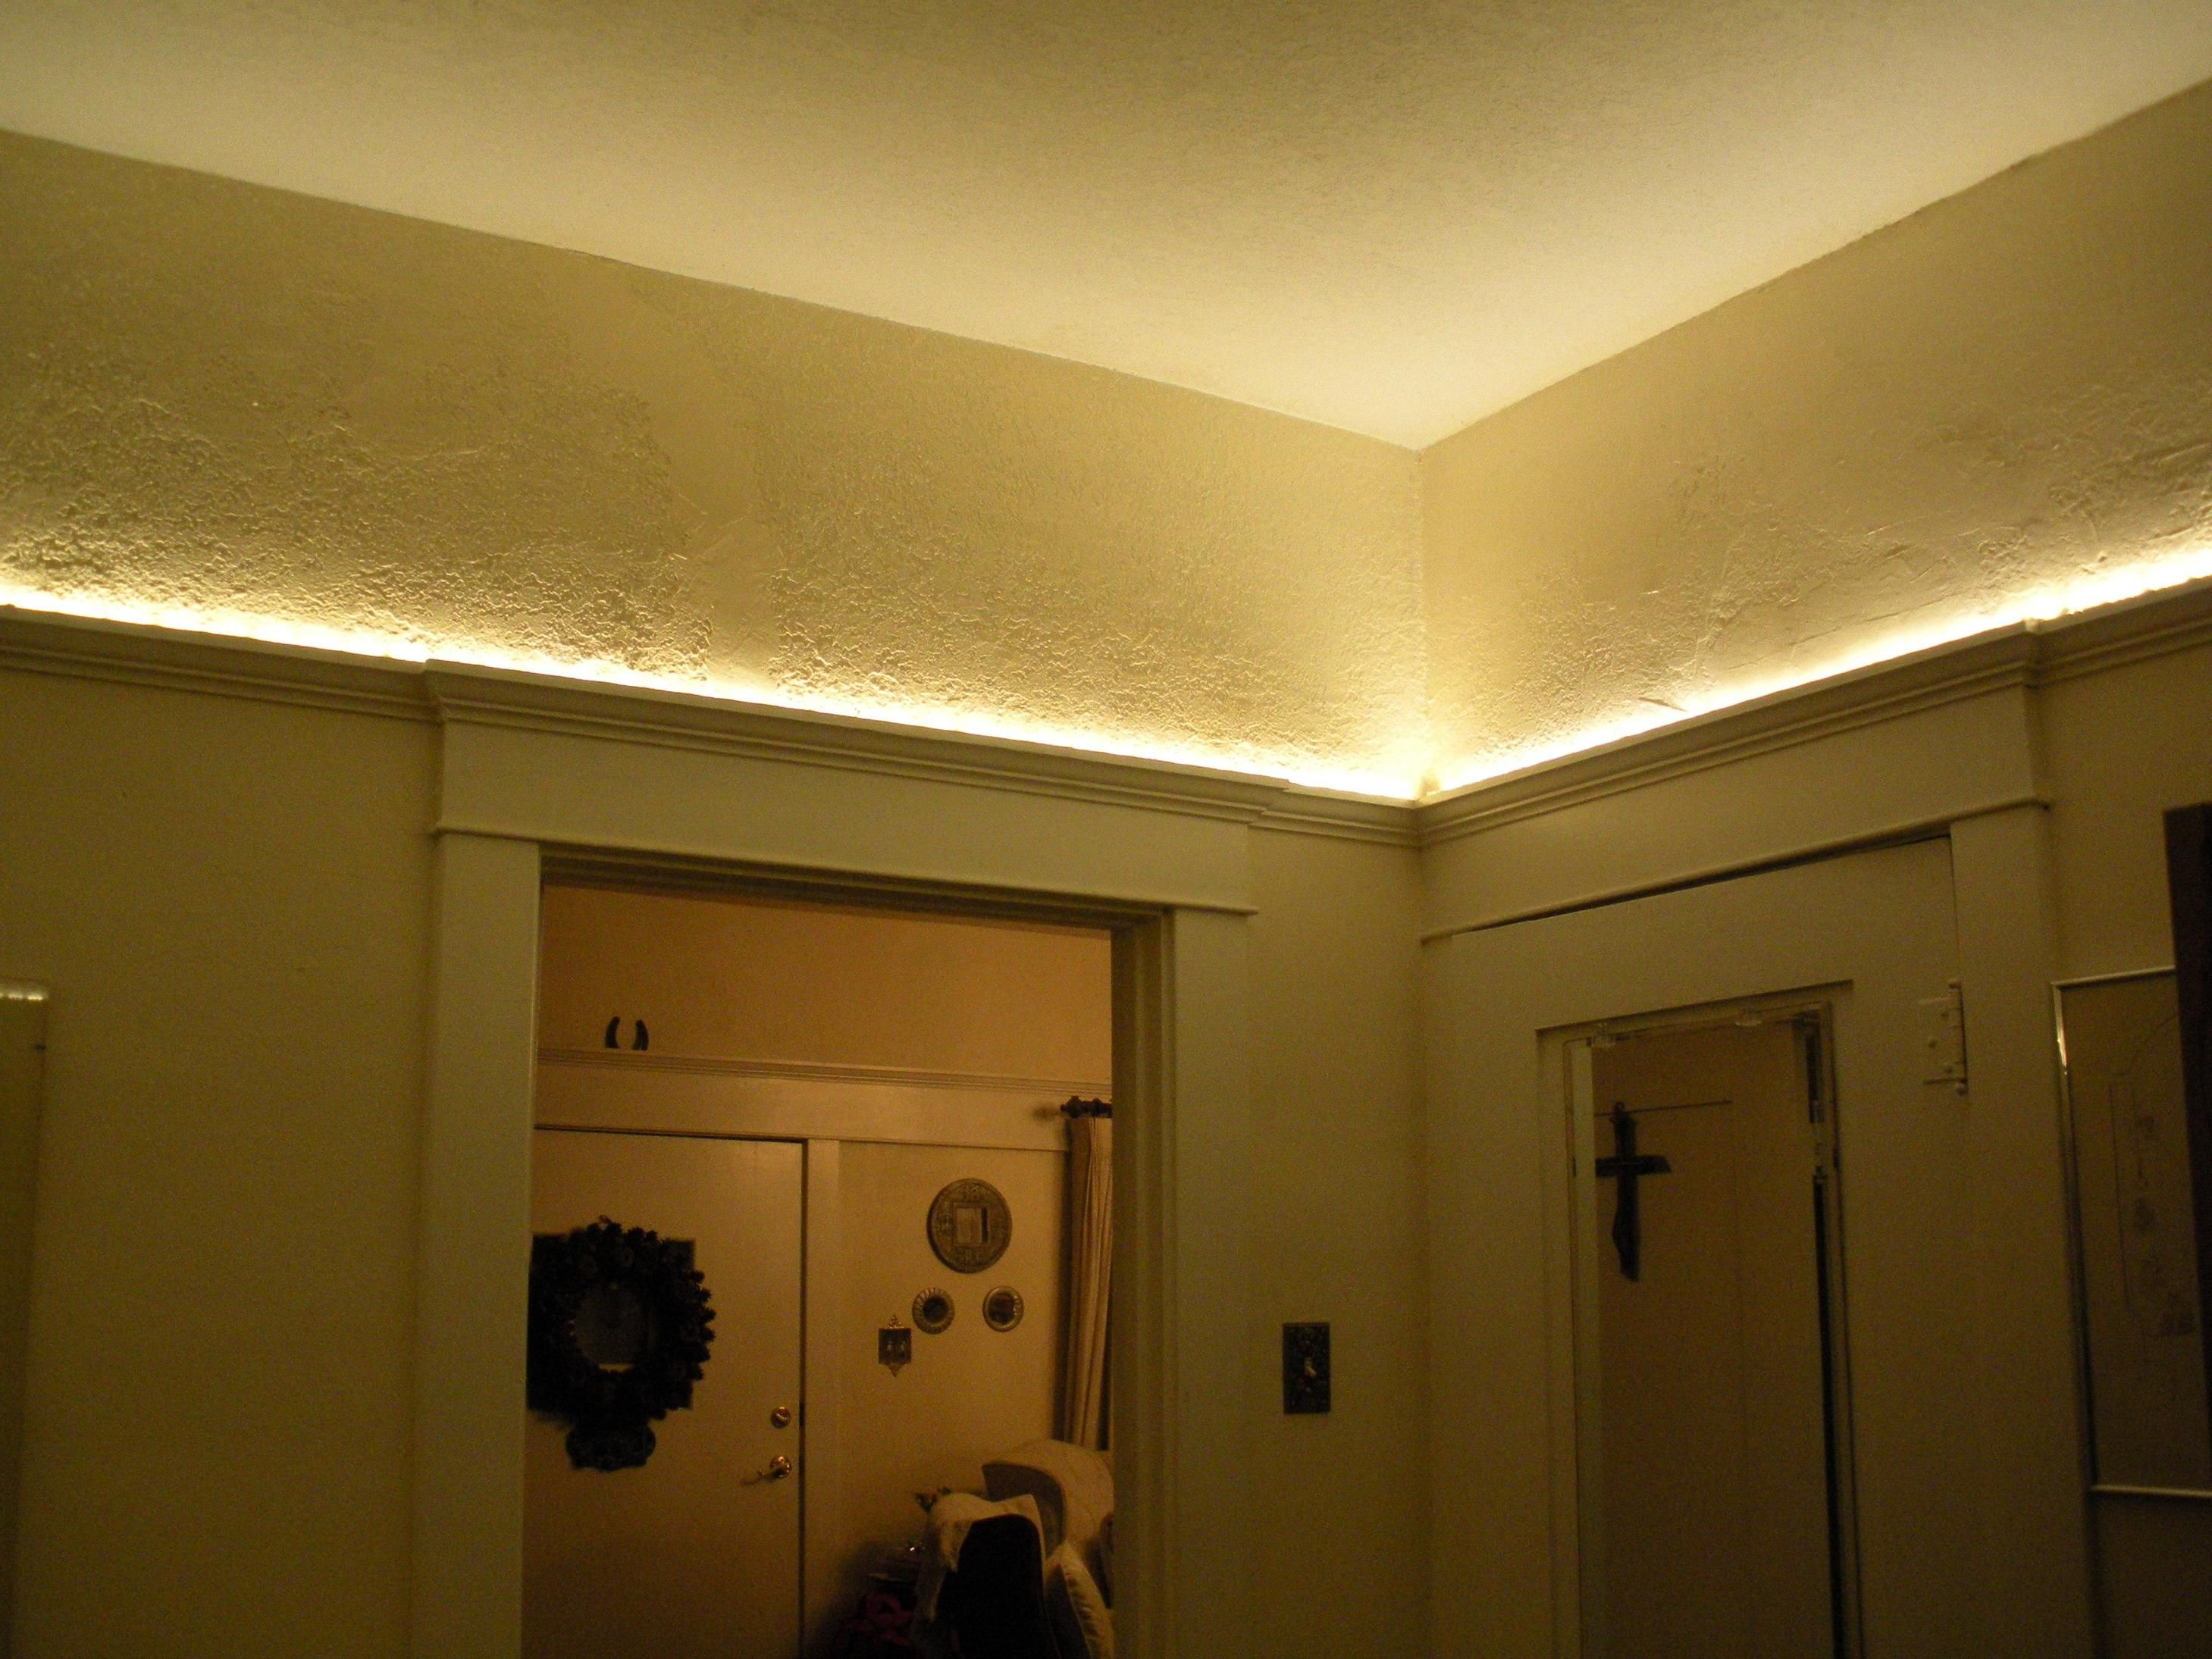 Indirect Lighting Can Be Done On 1 2 3 Or 4 Walls You Never See